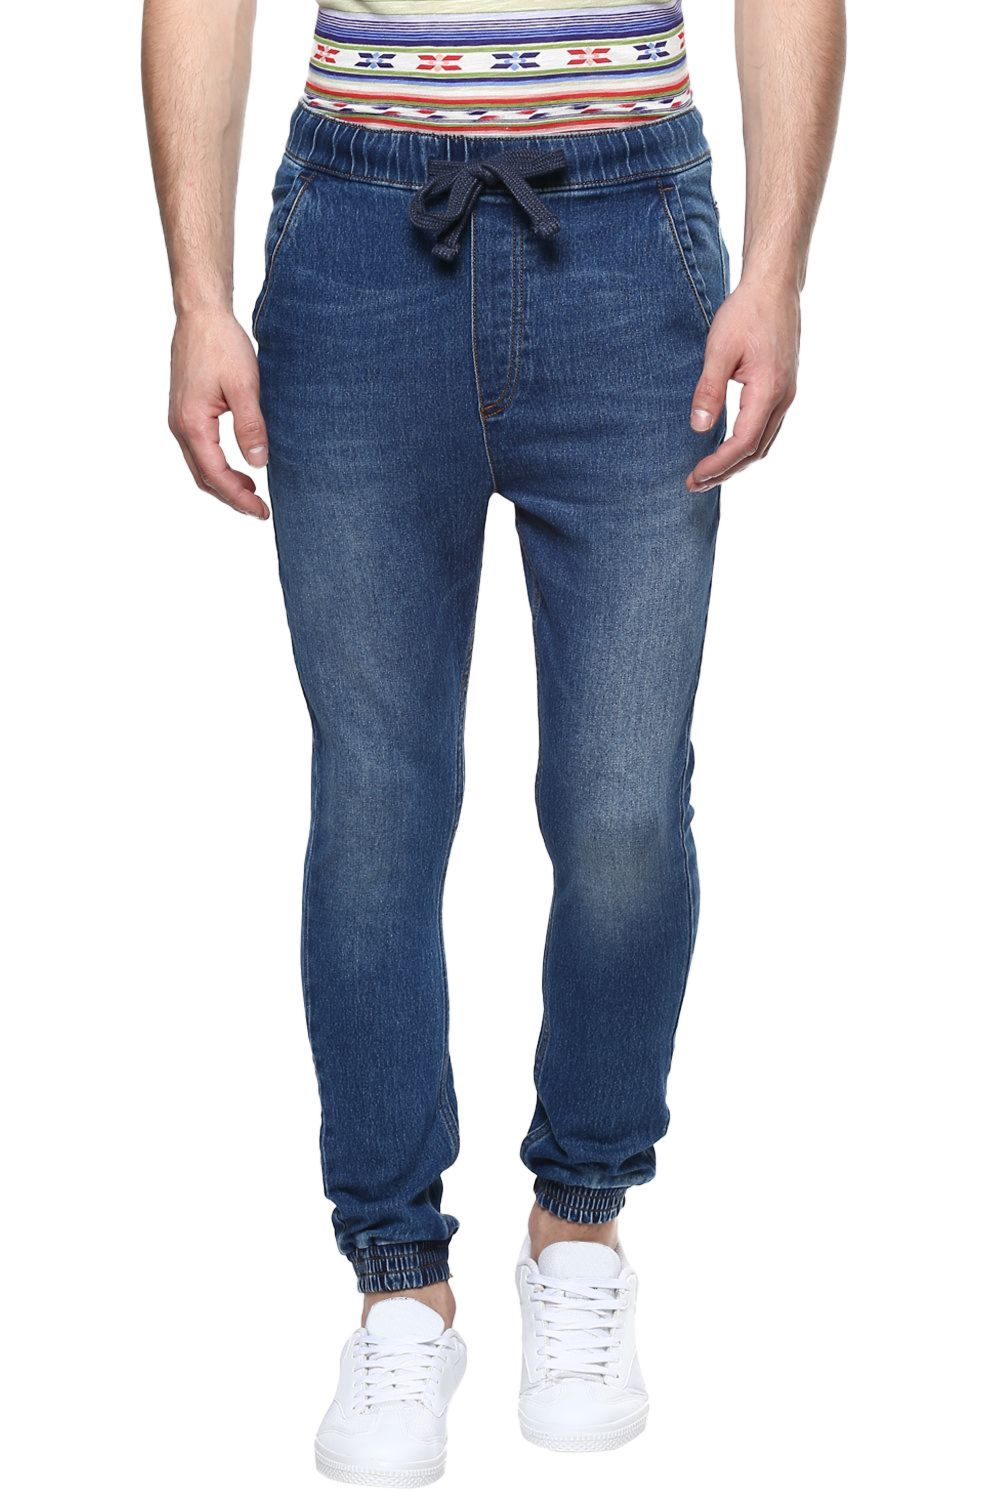 Bare Denim by Pantaloons Jeans, Pantaloons Blue Denim